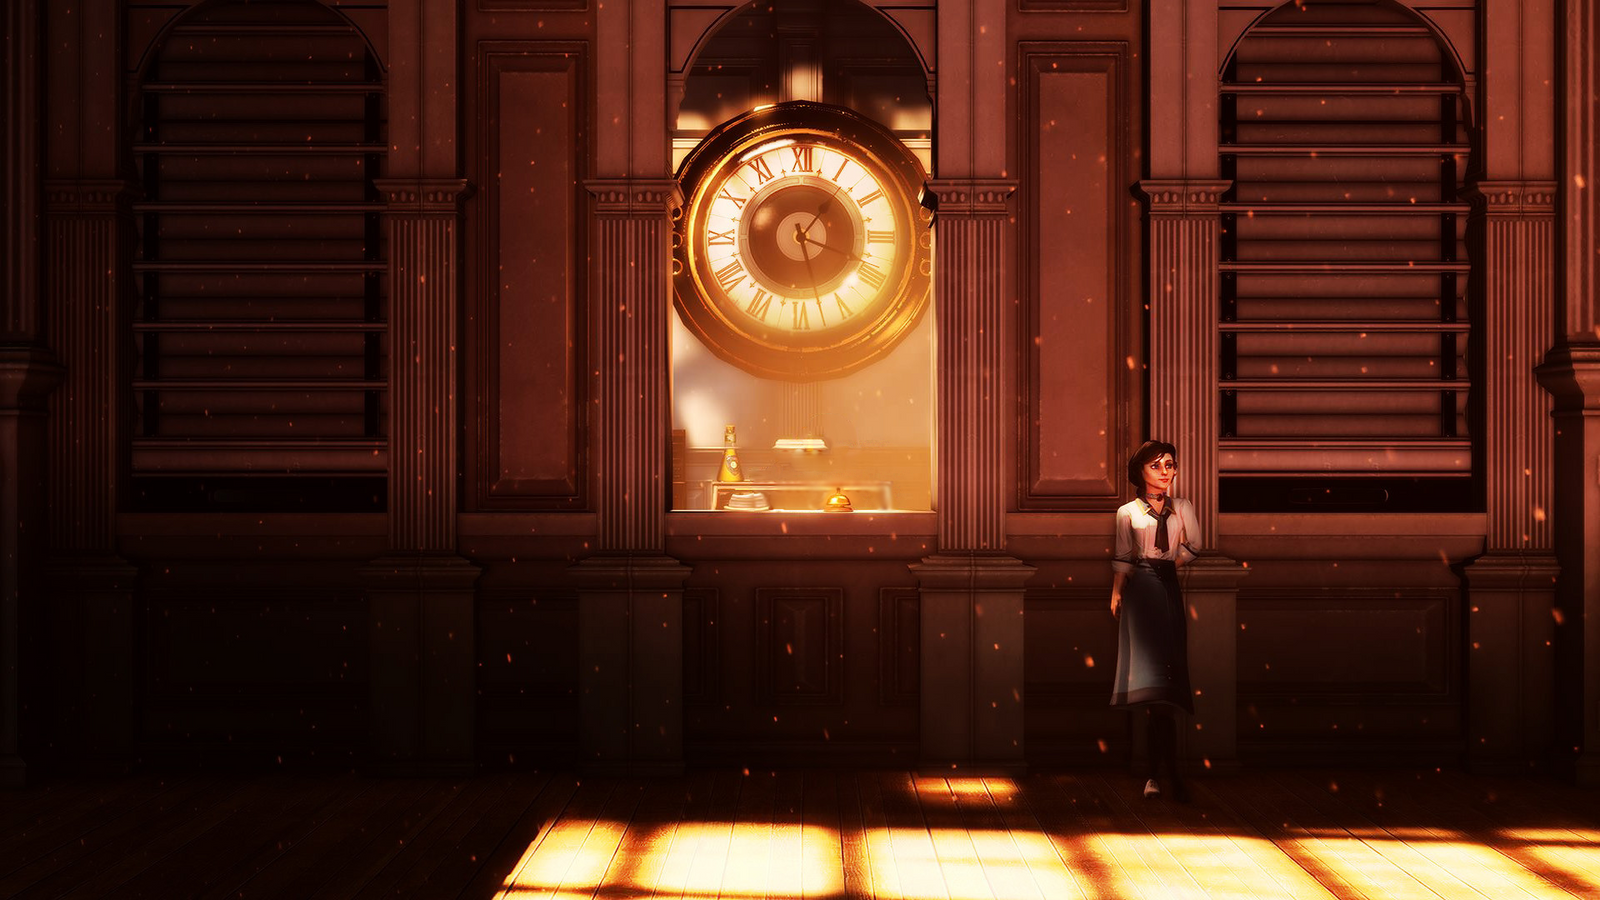 Bioshock infinite waiting for the lady by sirleo09 on deviantart bioshock infinite waiting for the lady by sirleo09 voltagebd Image collections